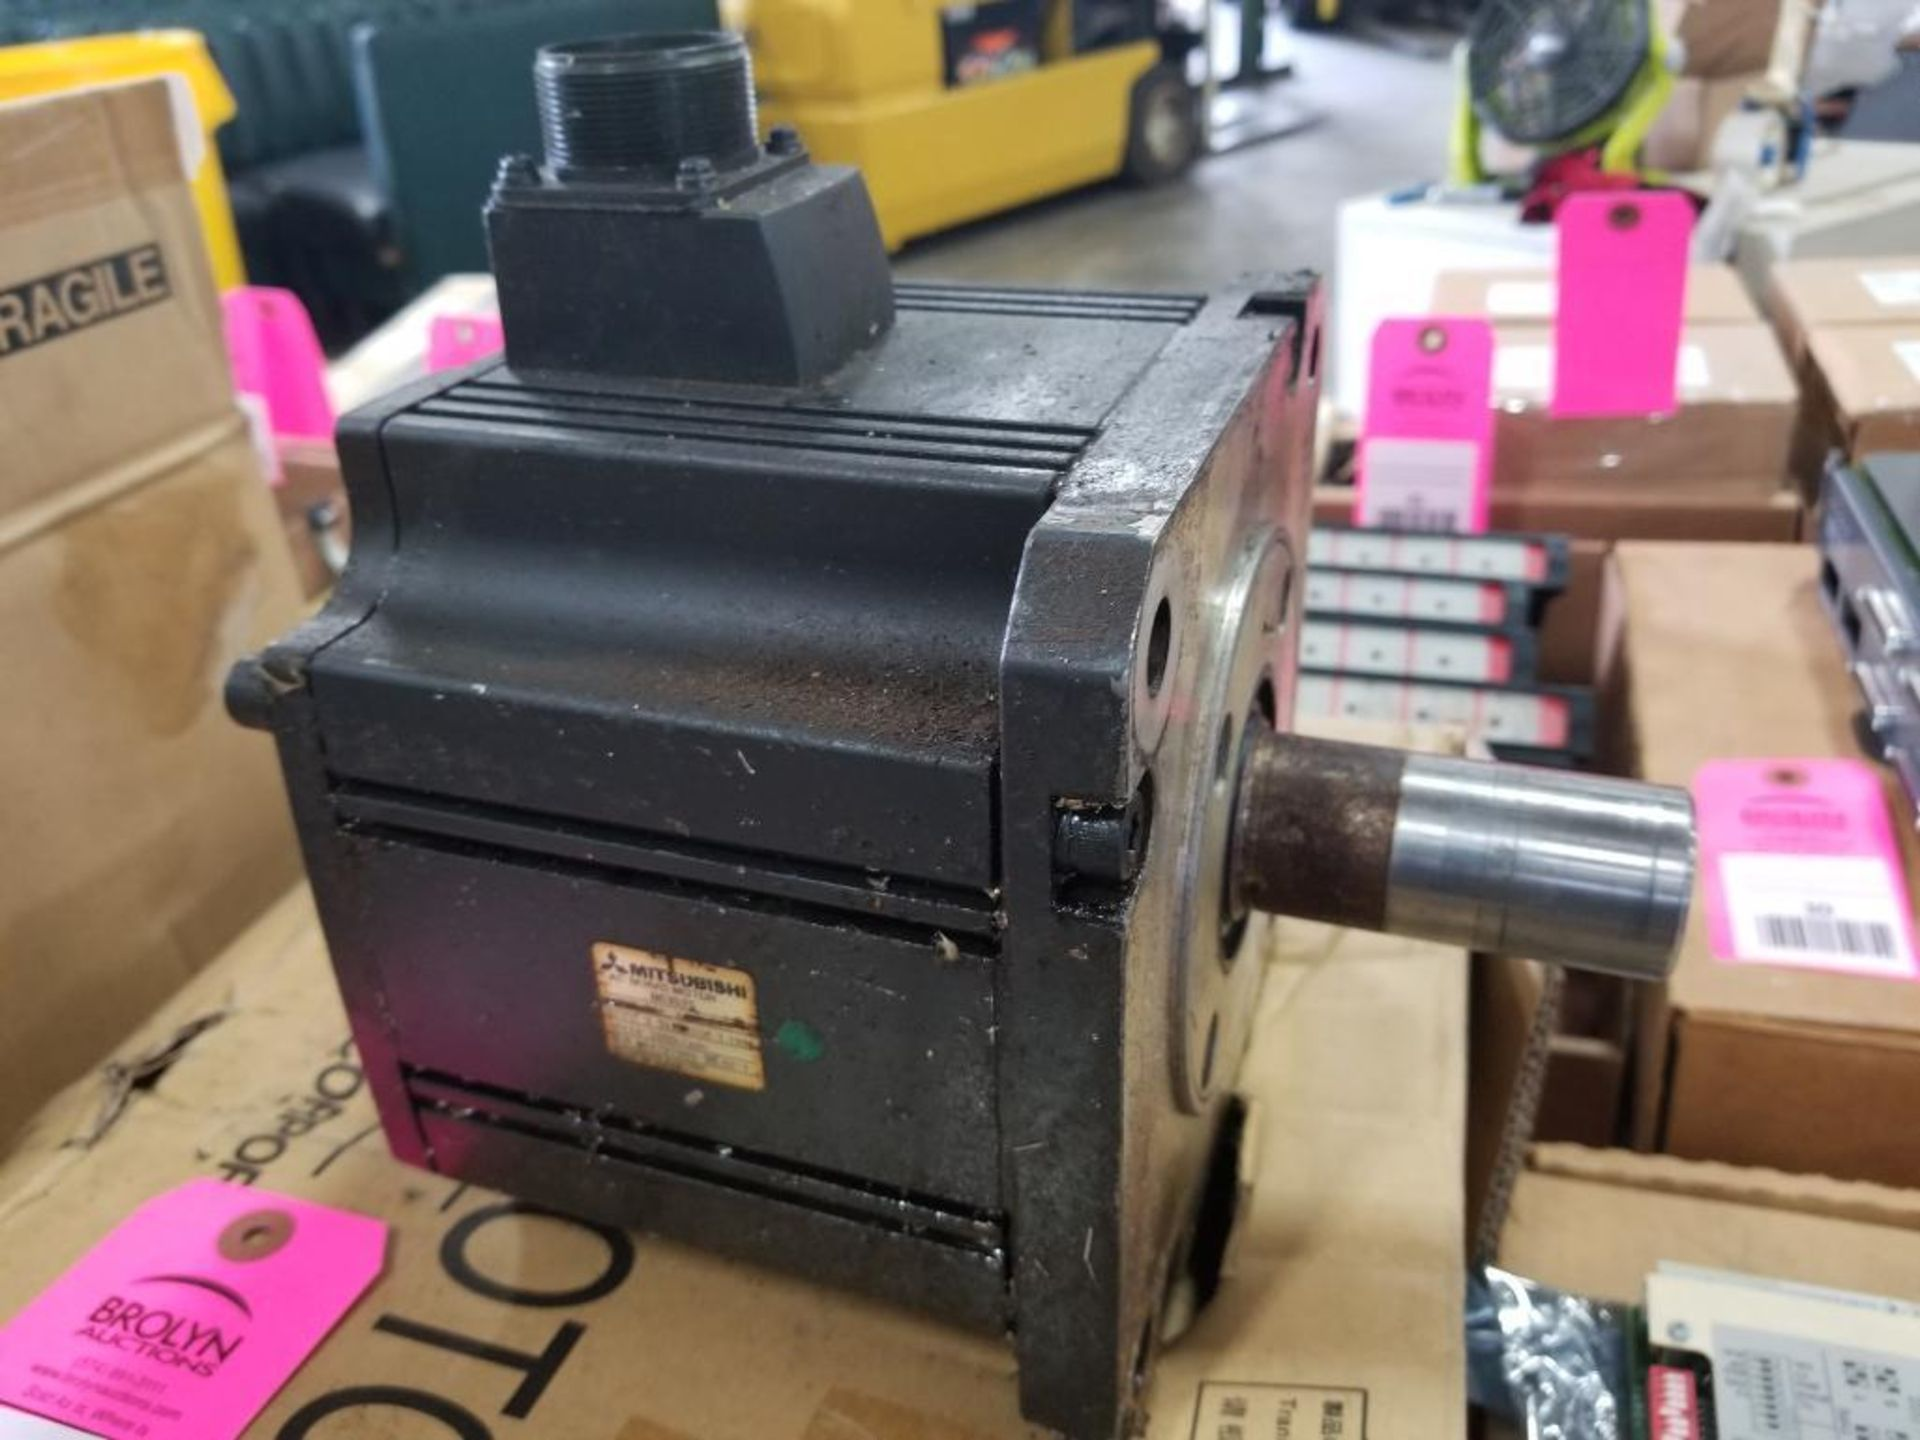 Mitsubishi HC-3525S servo motor. In box, but appears used. - Image 4 of 4